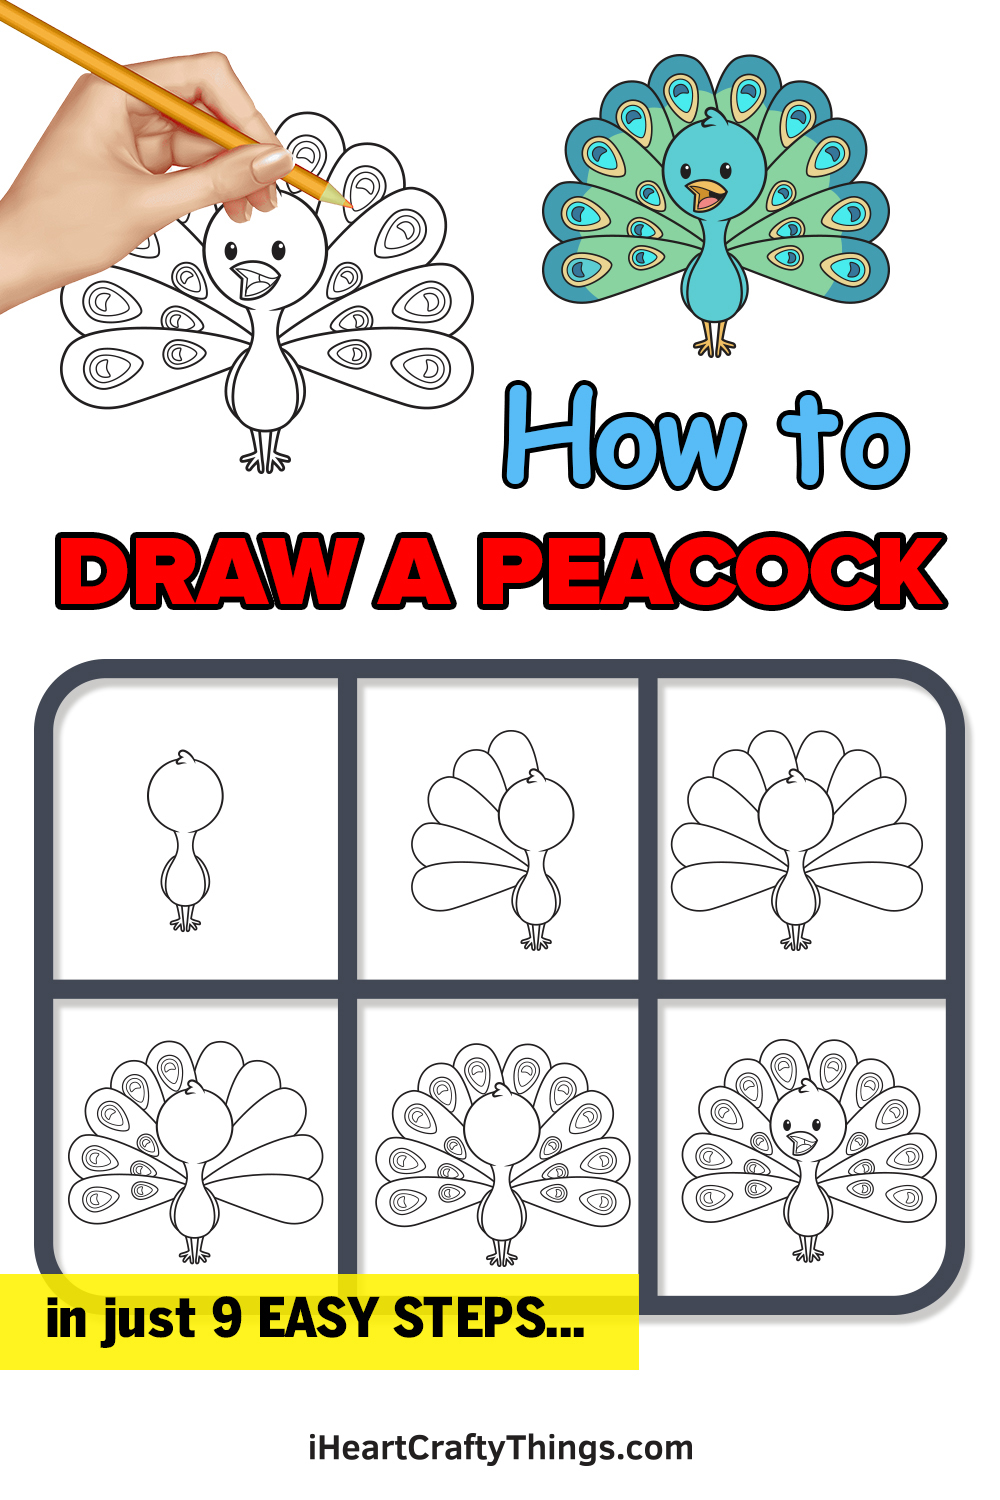 how to draw a peacock in 9 easy steps